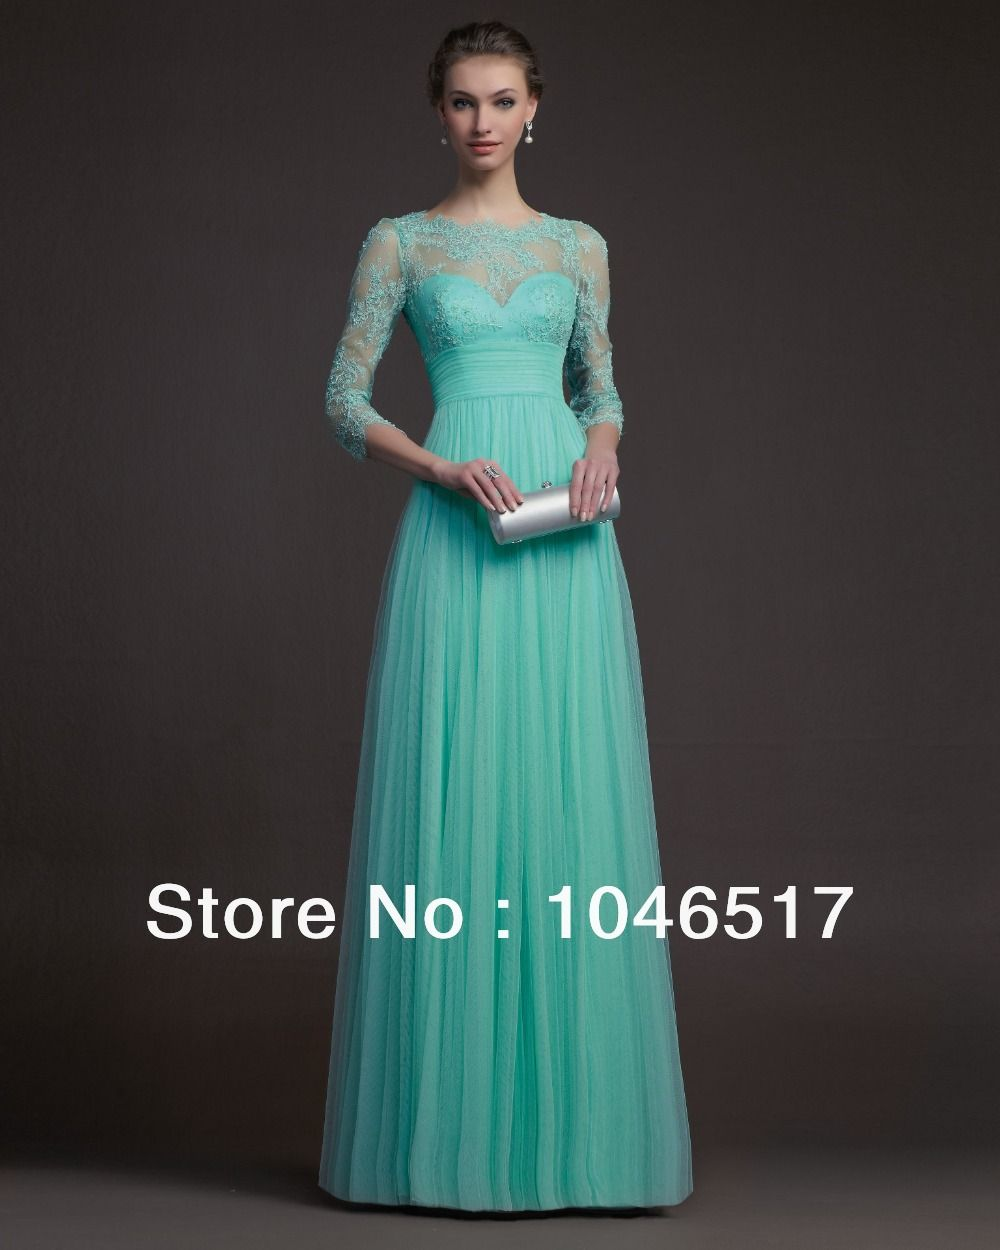 Free shipping turquoise tulle long elegant lace evening dress with